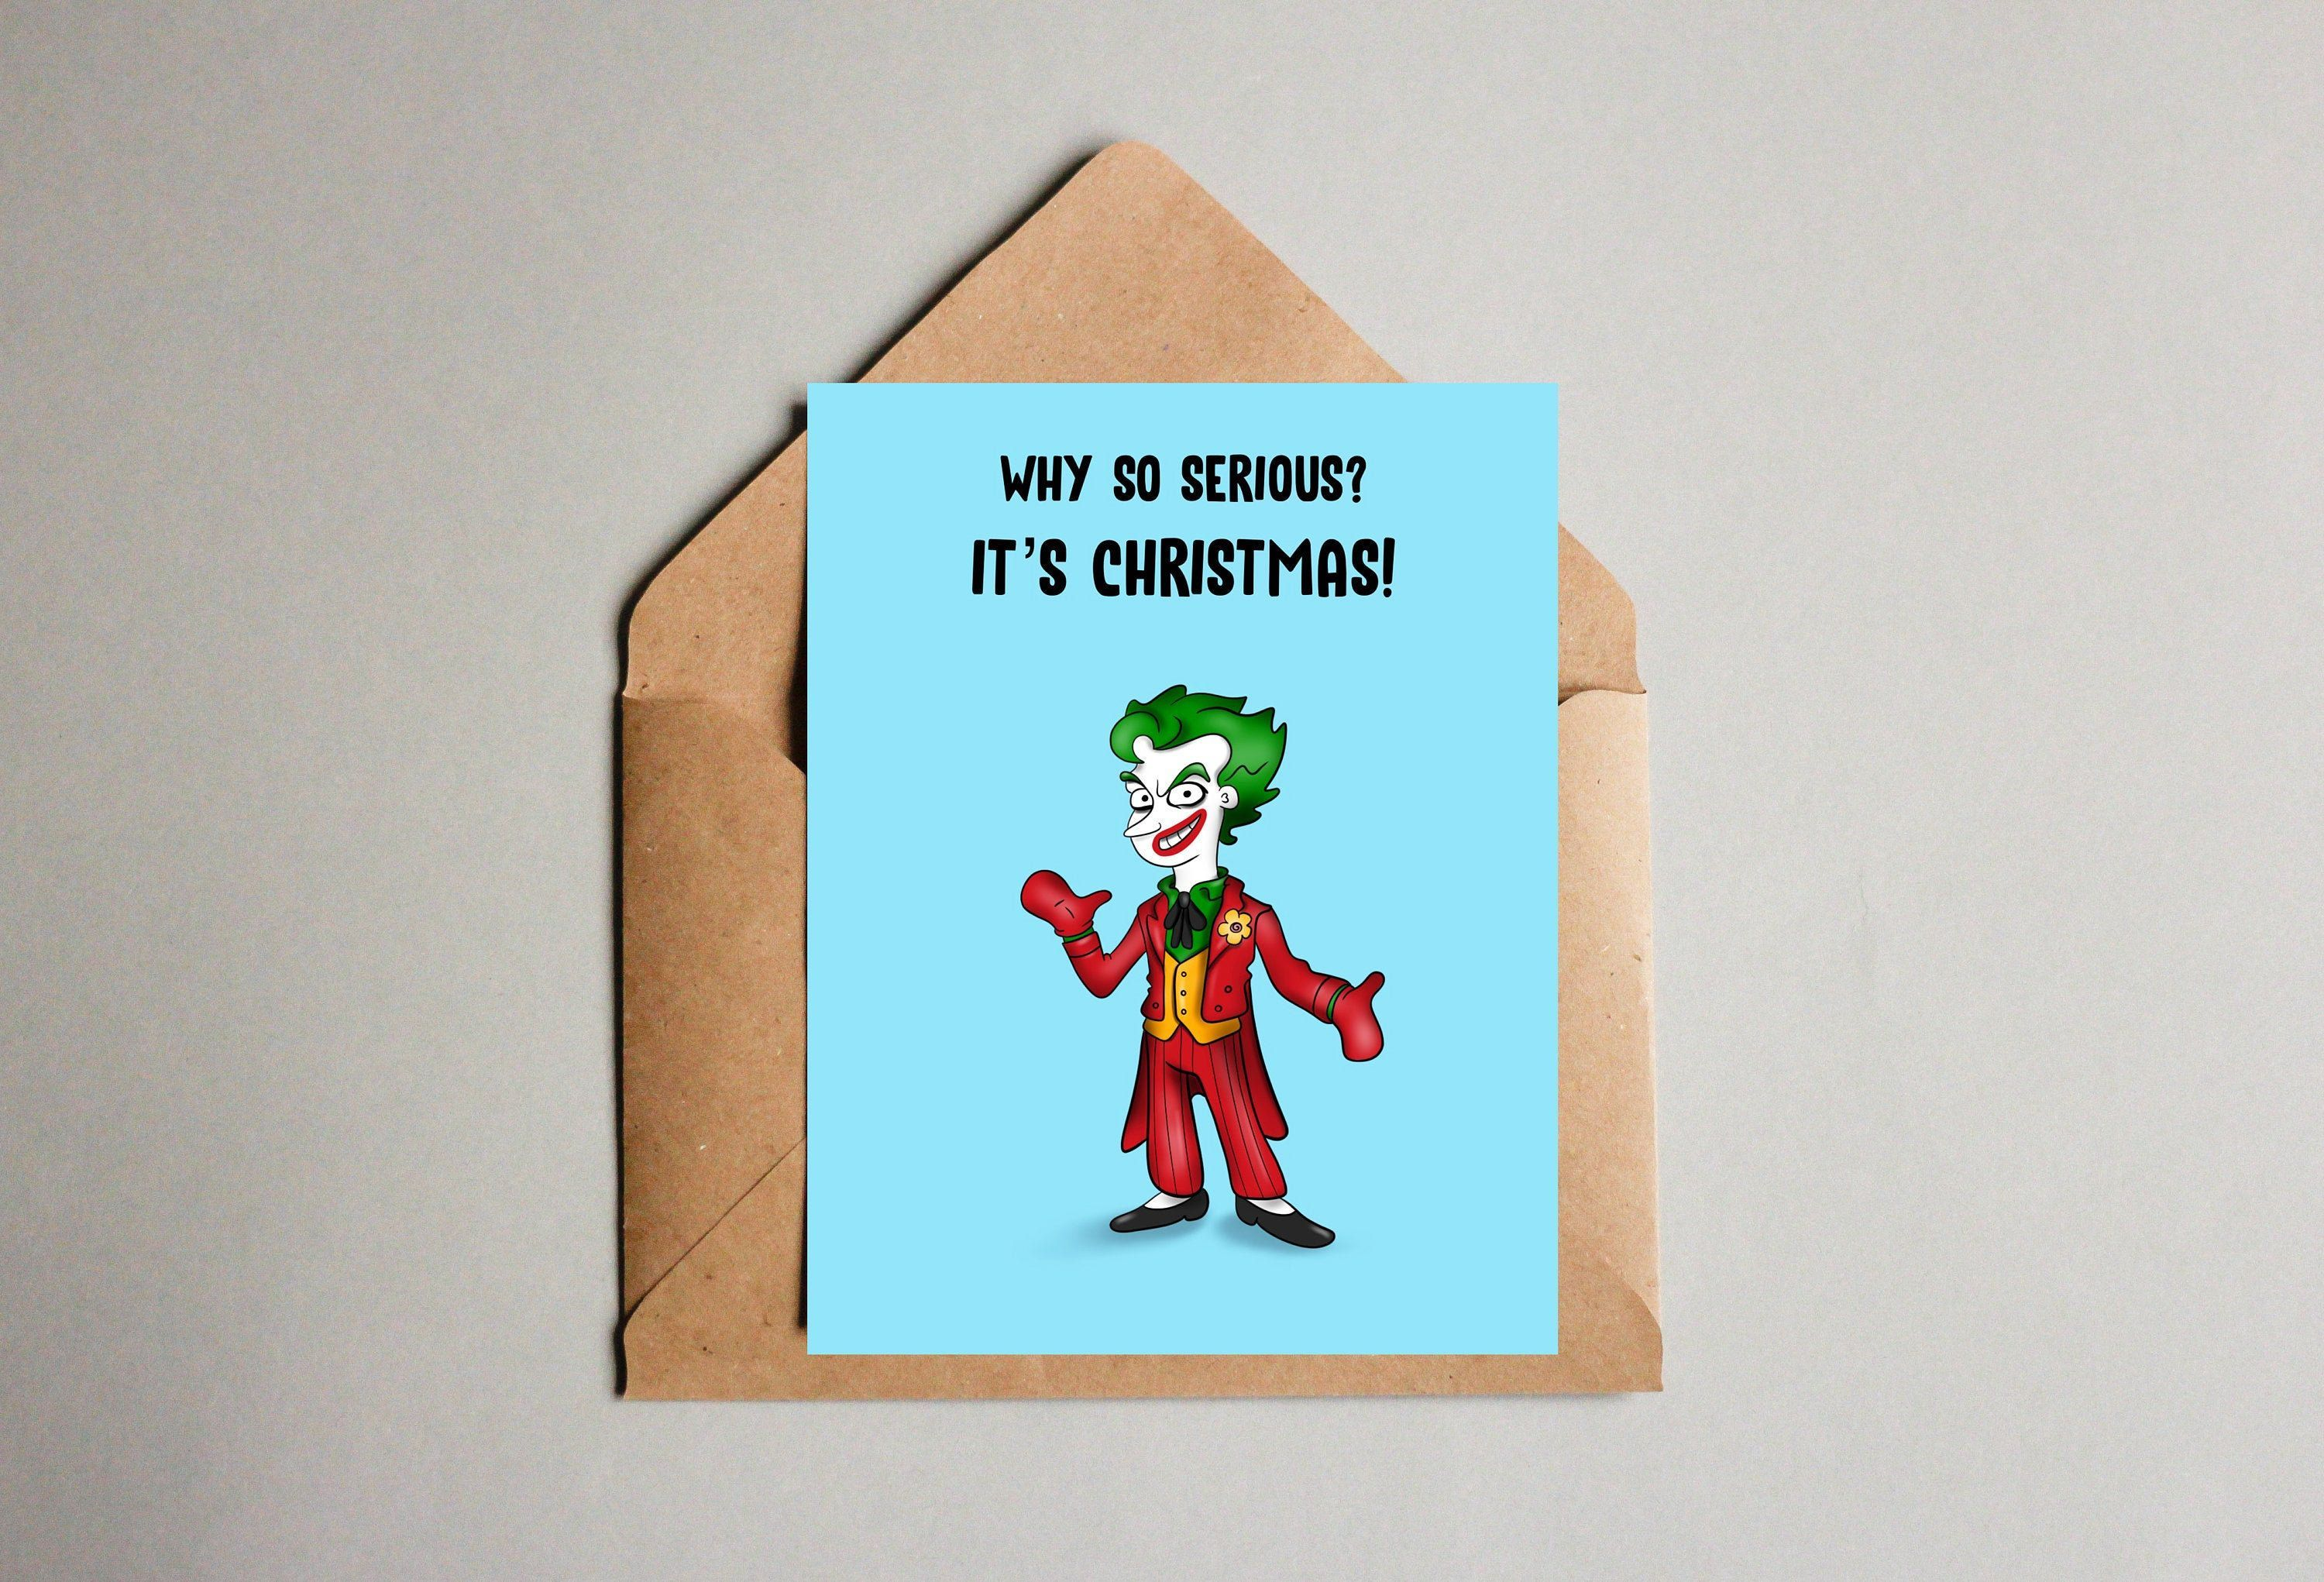 Joker Christmas card for husband, gift for boyfriend, Christmas gift ideas, personalized Christmas card, Mens Christmas gifts, pop culture #christmasgiftsforboyfriend Joker Christmas card for husband, gift for boyfriend, Christmas gift ideas, personalized Christmas card, Mens Christmas gifts, pop culture by AlyLouCards on Etsy #christmasgiftsforboyfriend